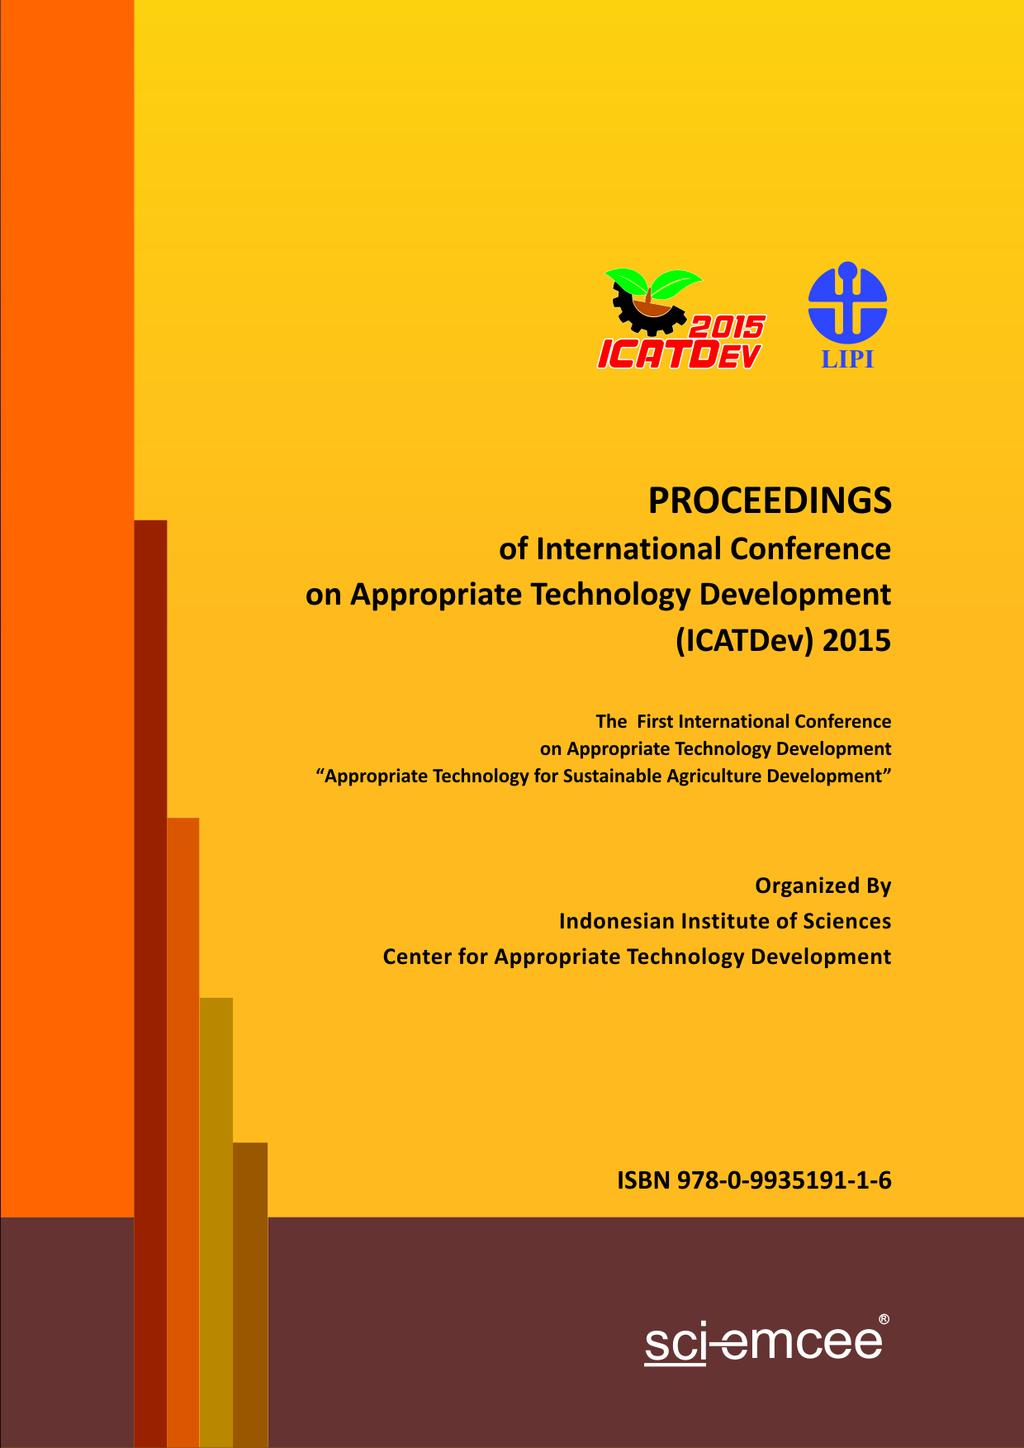 Proceedings Of International Conference On Appropriate Technology Kuliner  Pisang By Minar Production Bdg Transcription